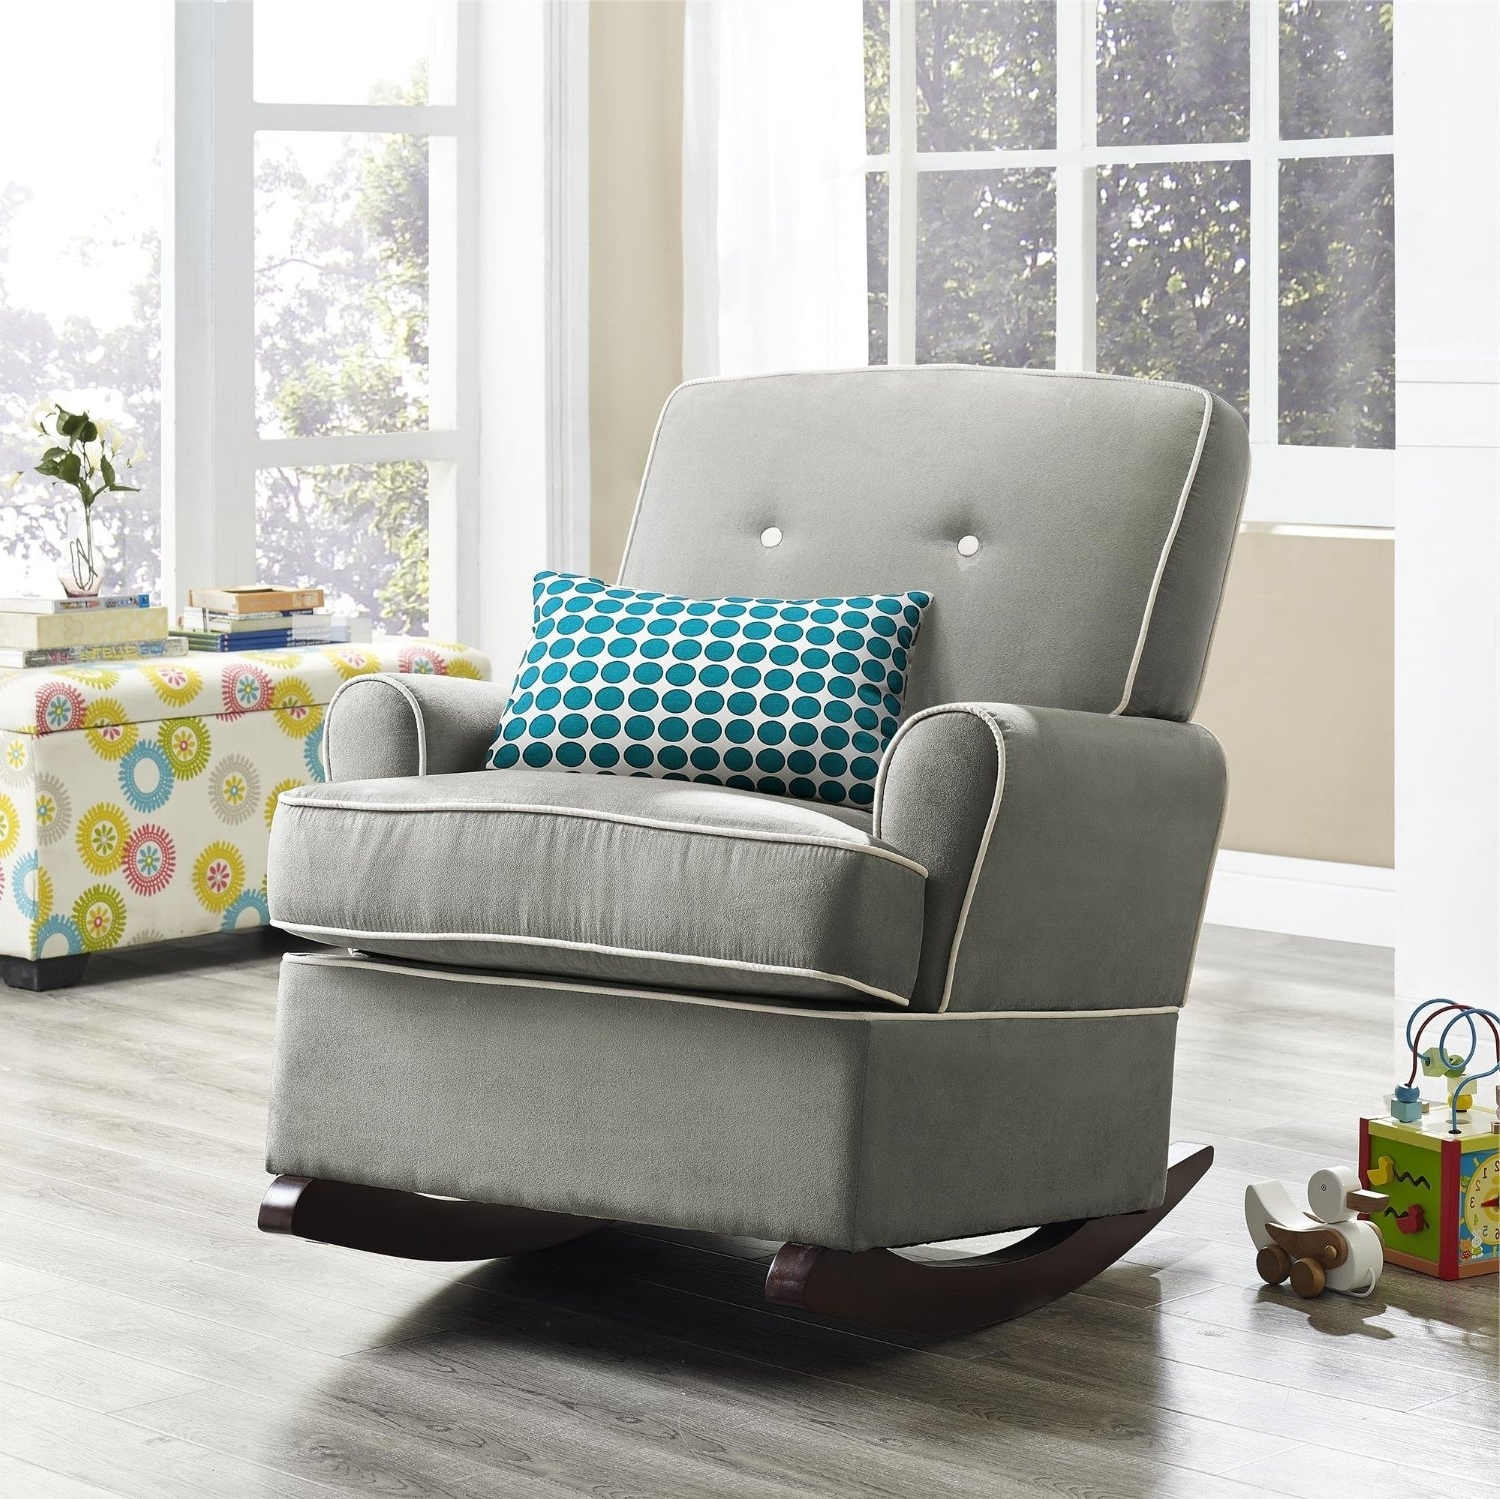 Upholstered Rocking Chairs Intended For Well Known The Best Upholstered Rocking Chair  (View 11 of 20)